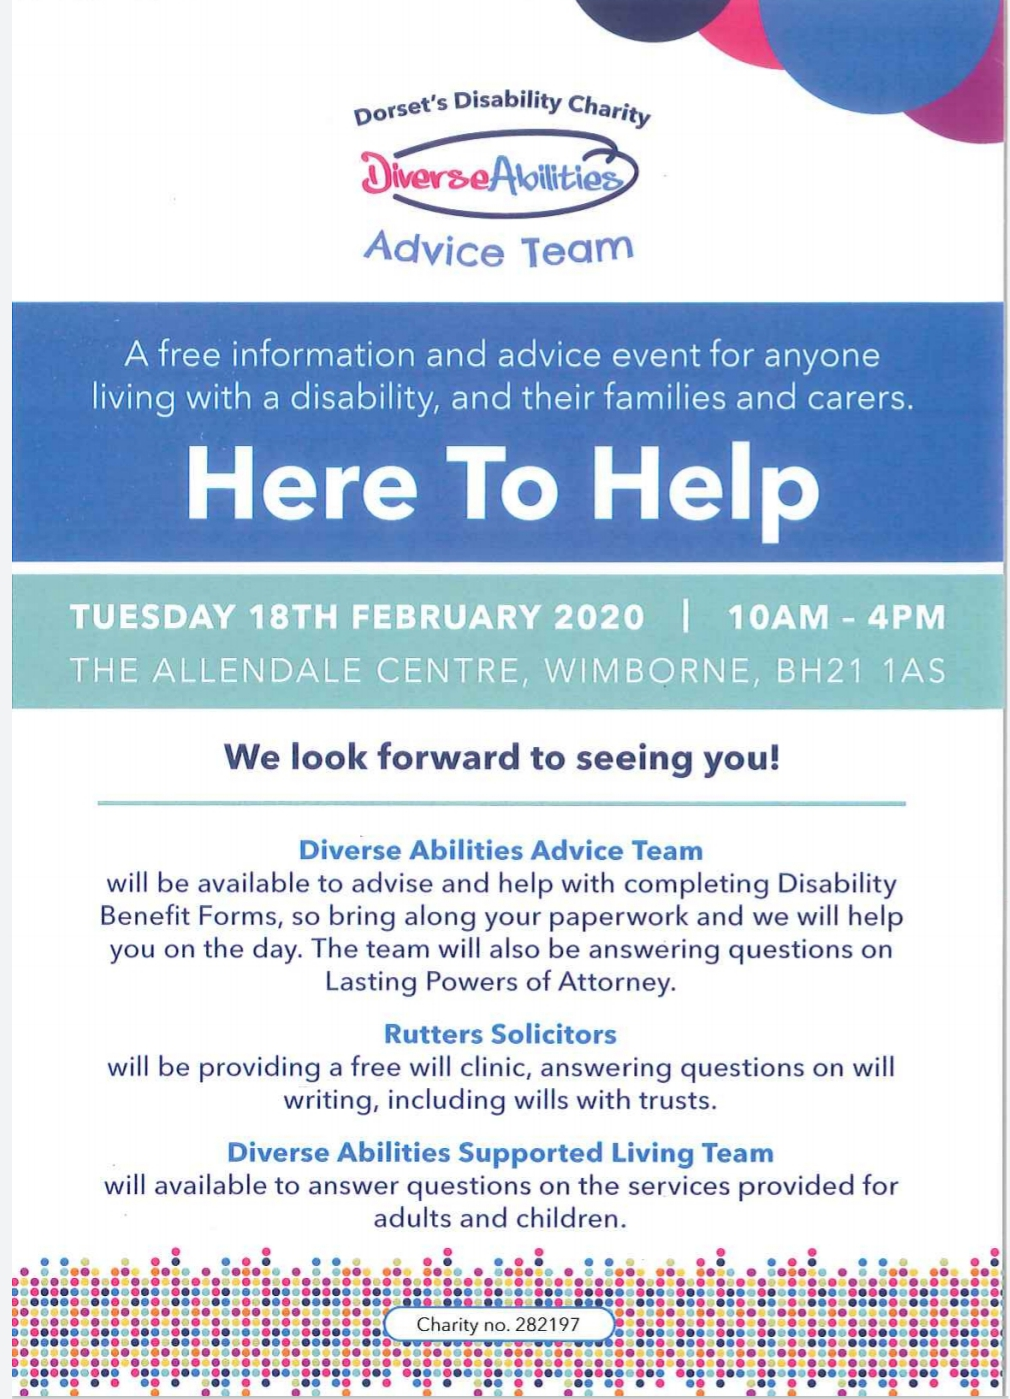 Rutters Solicitors support Diverse Abilities wills and trust solicitor advice Dorset